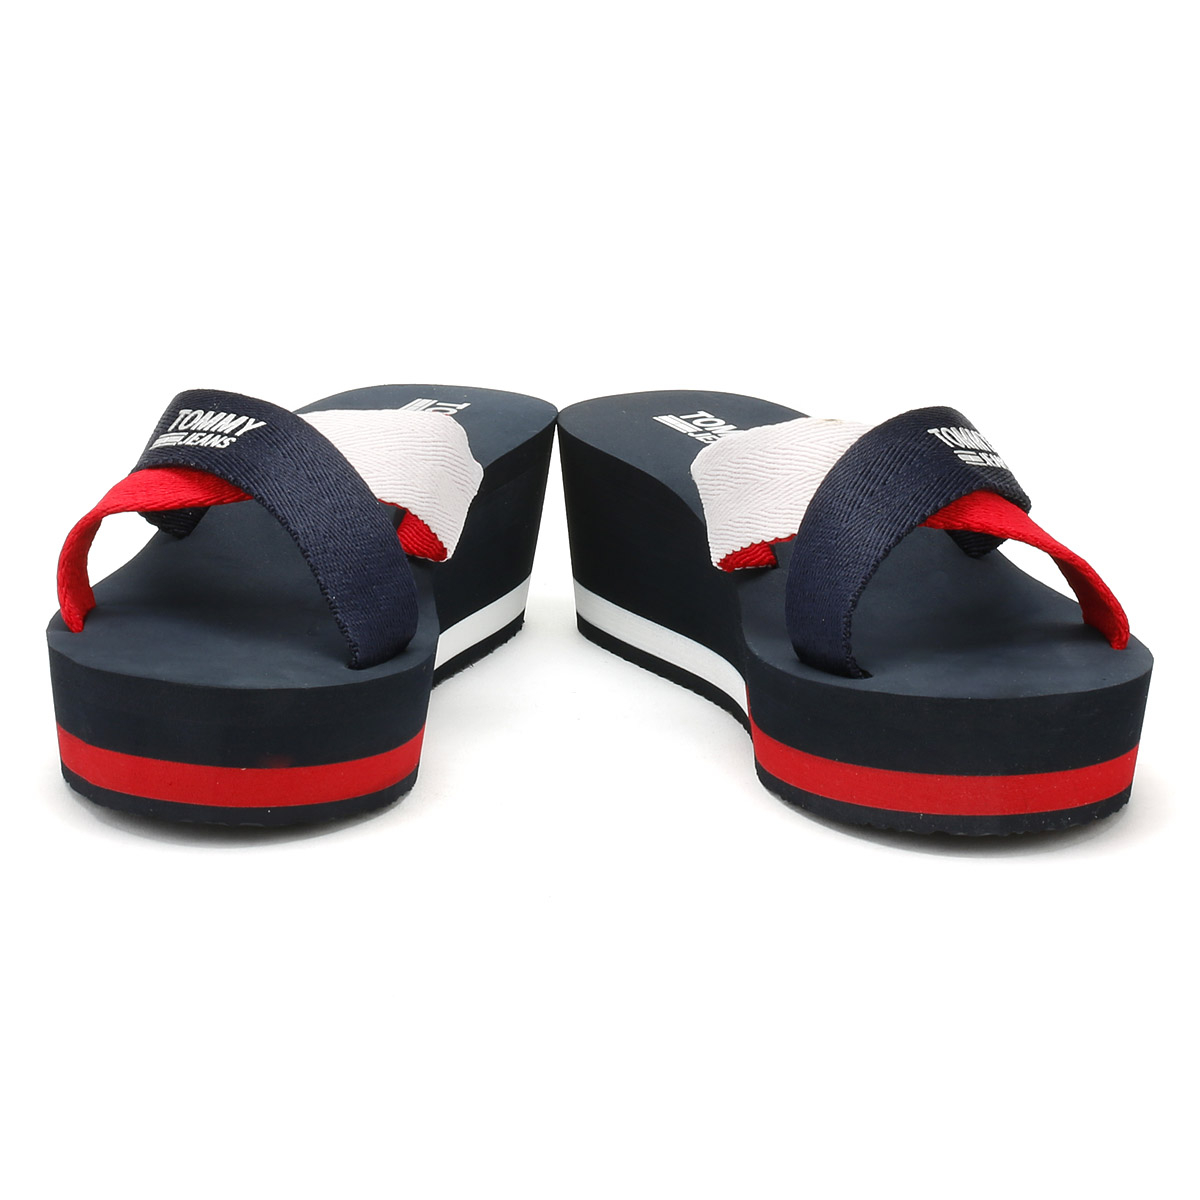 077aeeabd847b0 Details about Tommy Hilfiger Womens Slides Tommy Navy Blue Mid Wedge Summer  Beach Sandals